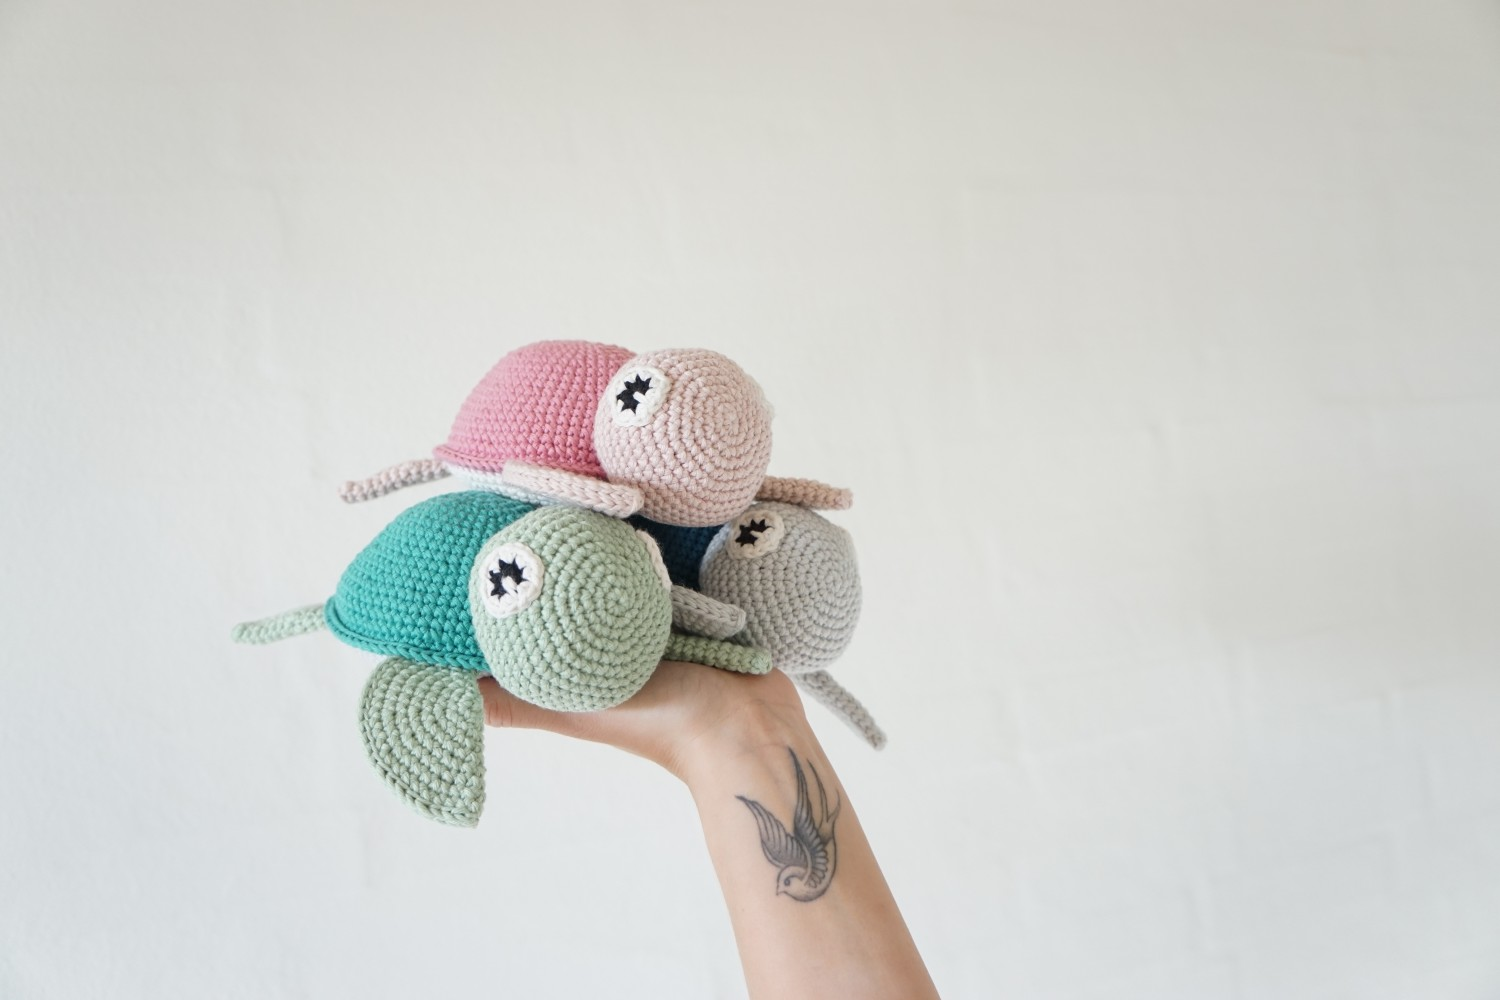 Free Amigurumi Patterns In English : Amigurumi Turtle-Free Pattern - Amigurumi Free Patterns